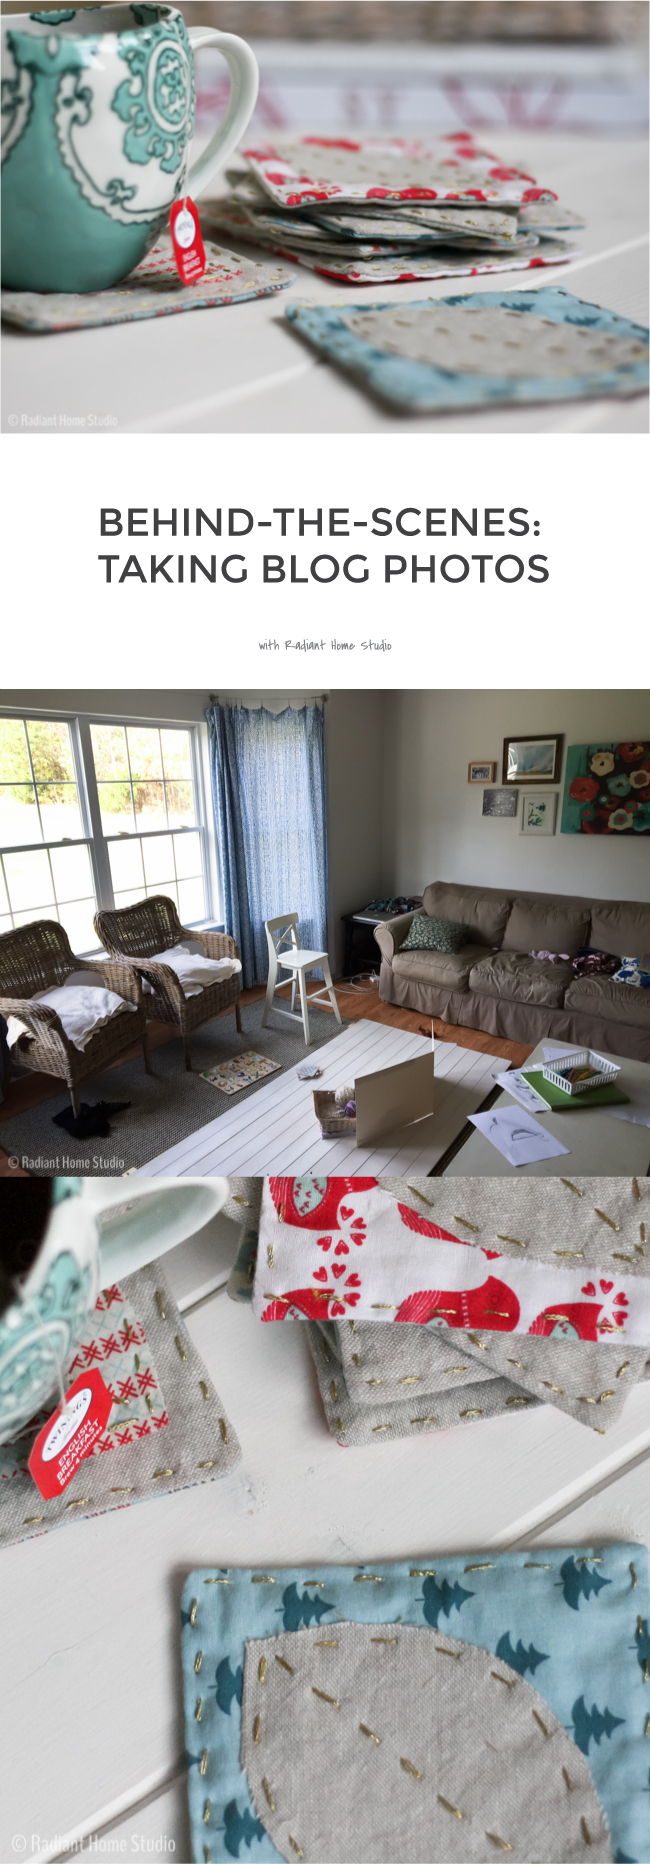 Behind-the-Scenes: What My House Really Looks Like When I Take Blog Photos | Radiant Home Studio